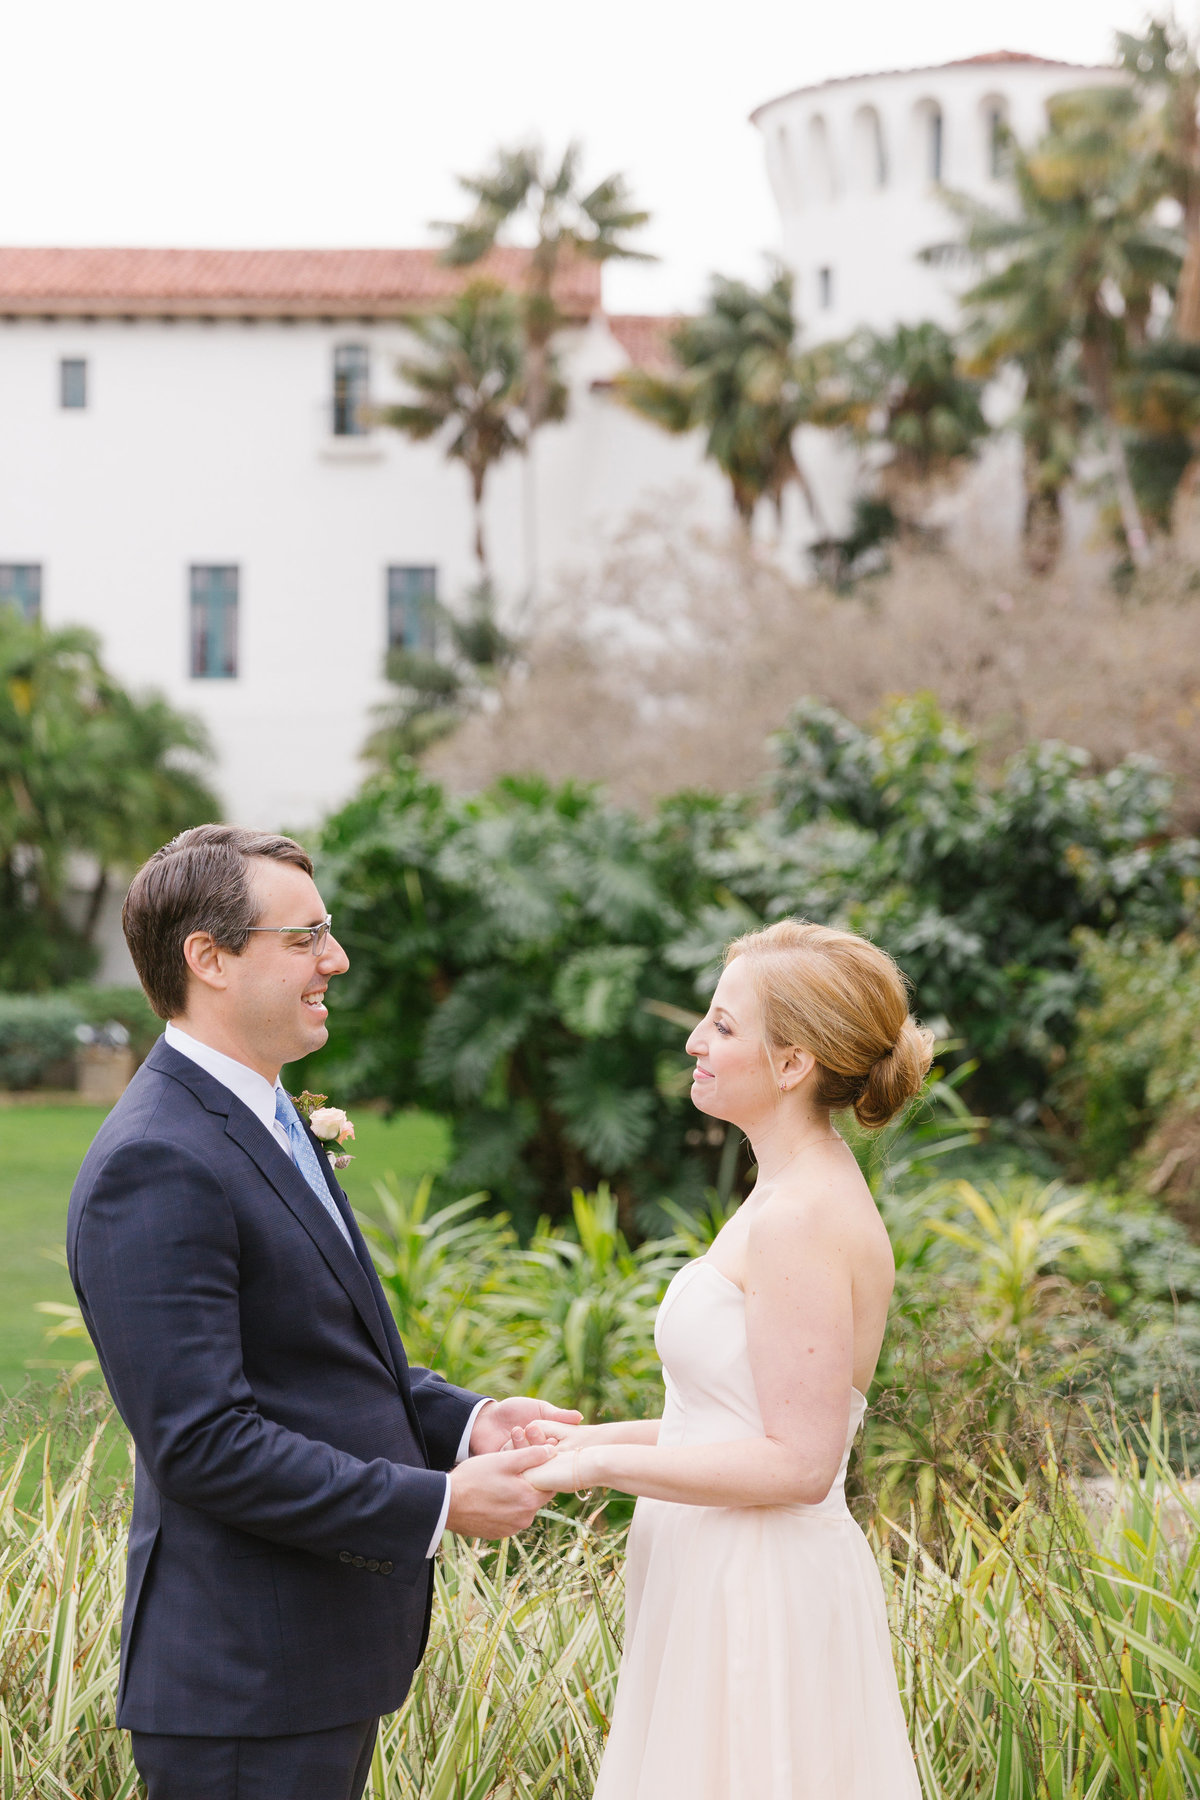 Intimate-Romantic-Santa-Barbara-Wedding-Venue-8